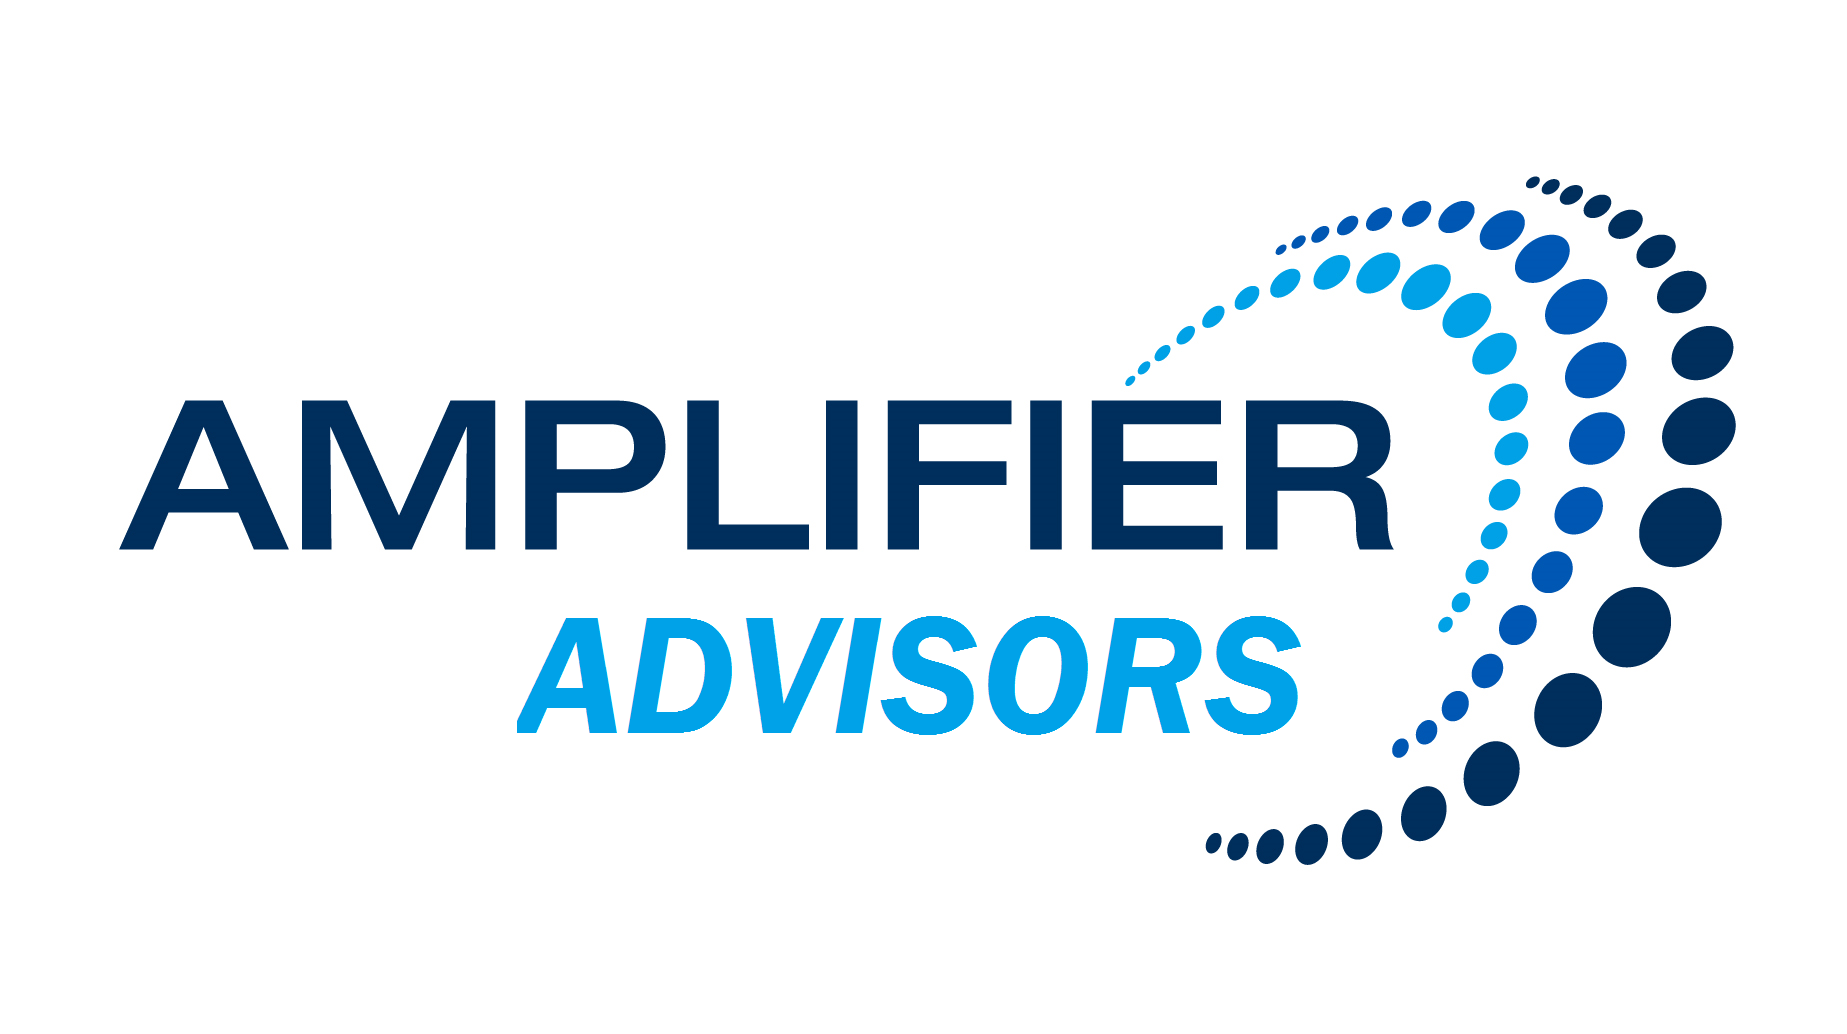 amplifieradvisors.png